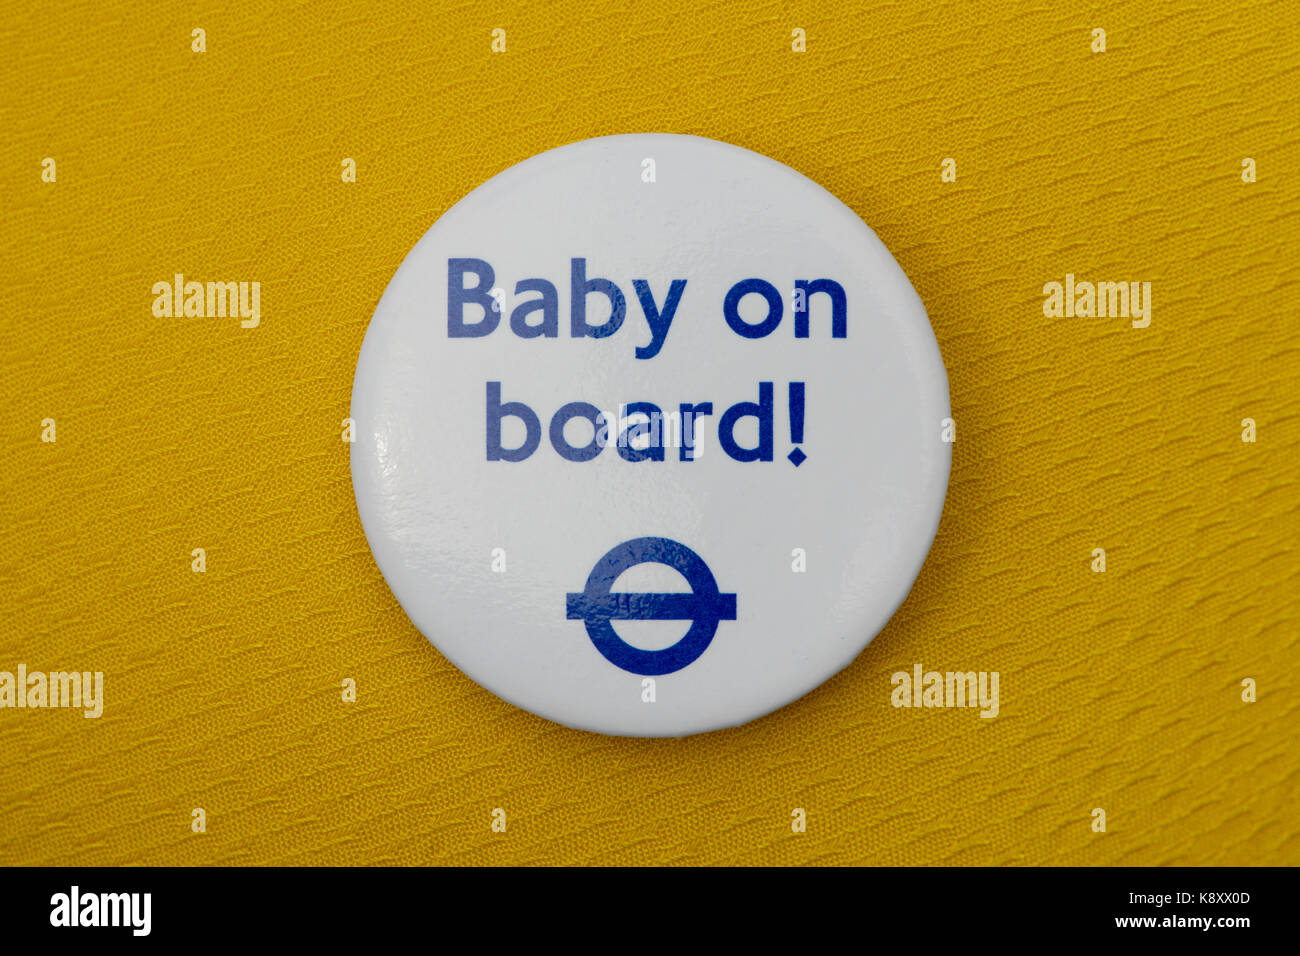 A London Underground Baby on Board badge worn on a yellow fabric garment (Editorial use only). Stock Photo